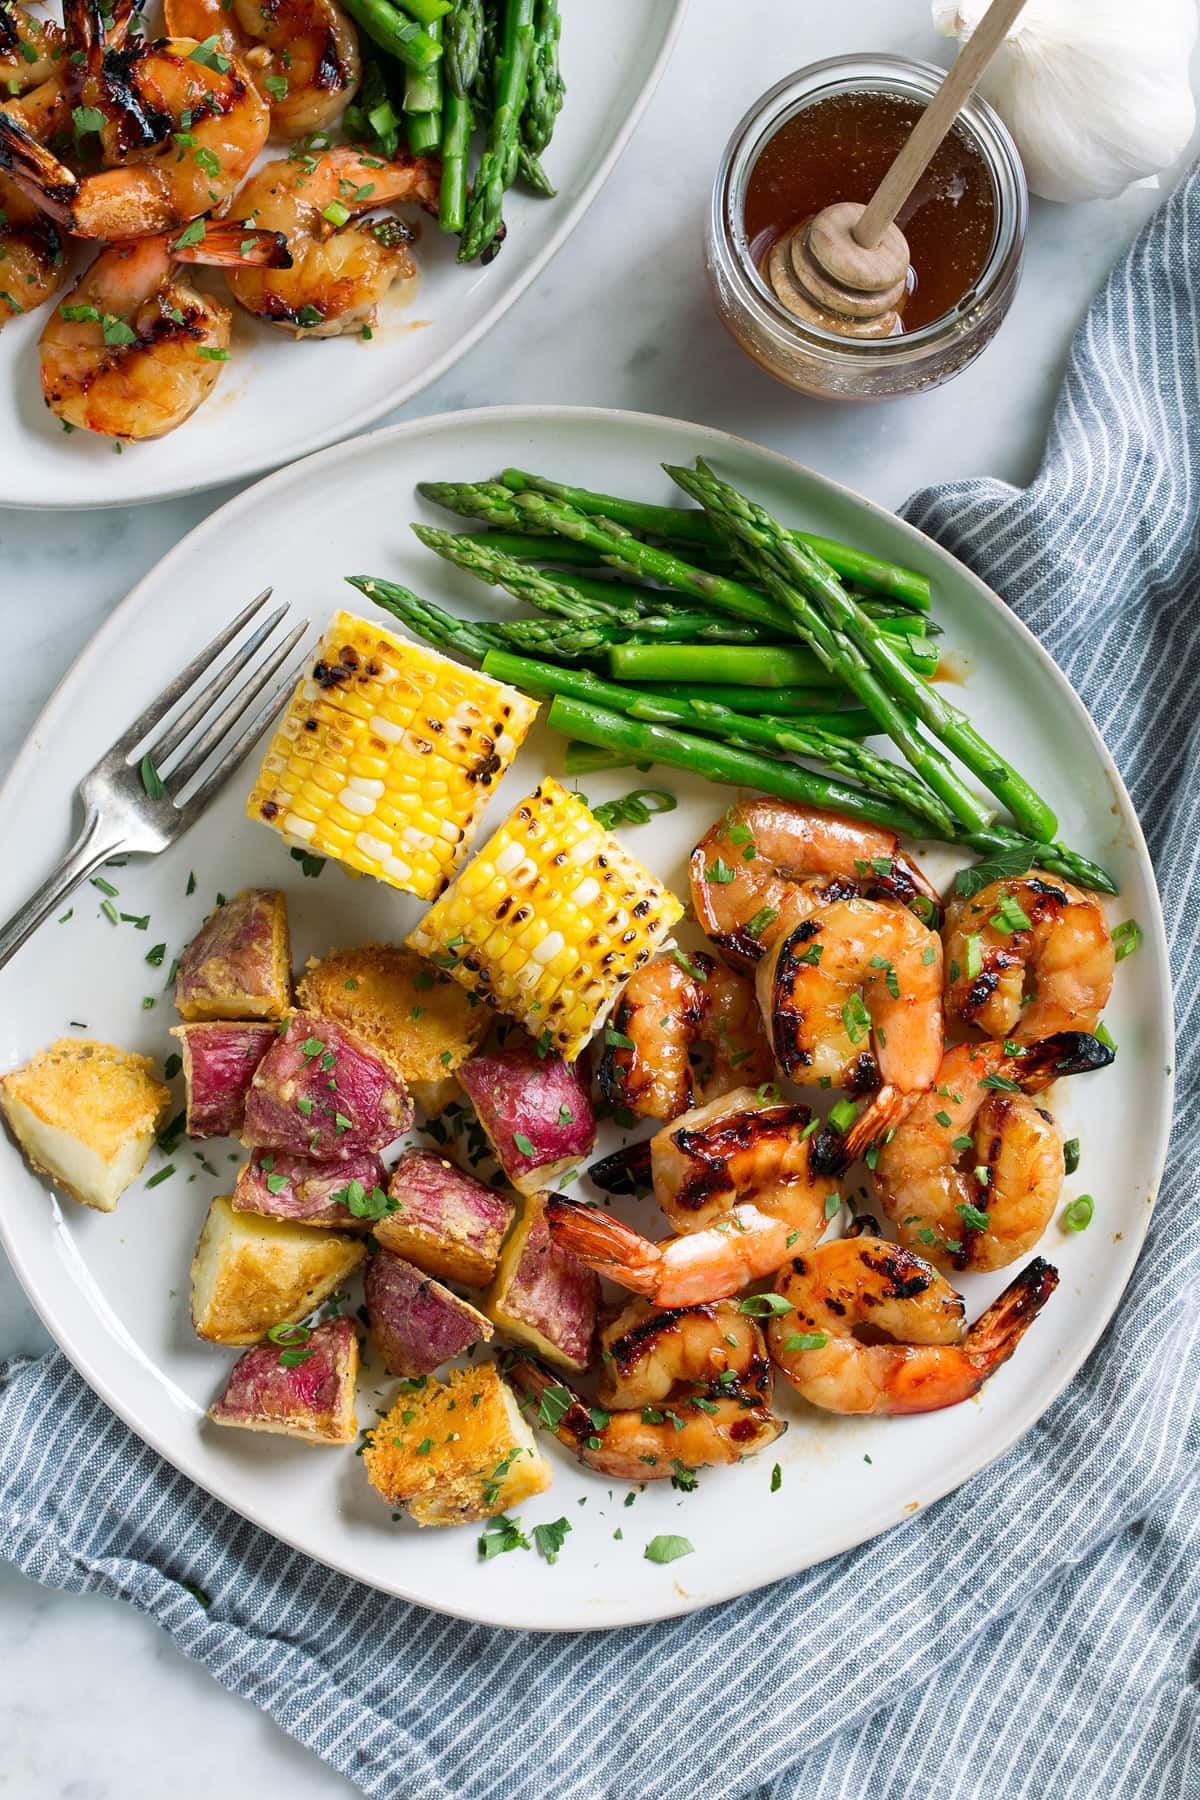 Grilled shrimp on a plate with a side of grilled corn, steamed asparagus and roasted potatoes.